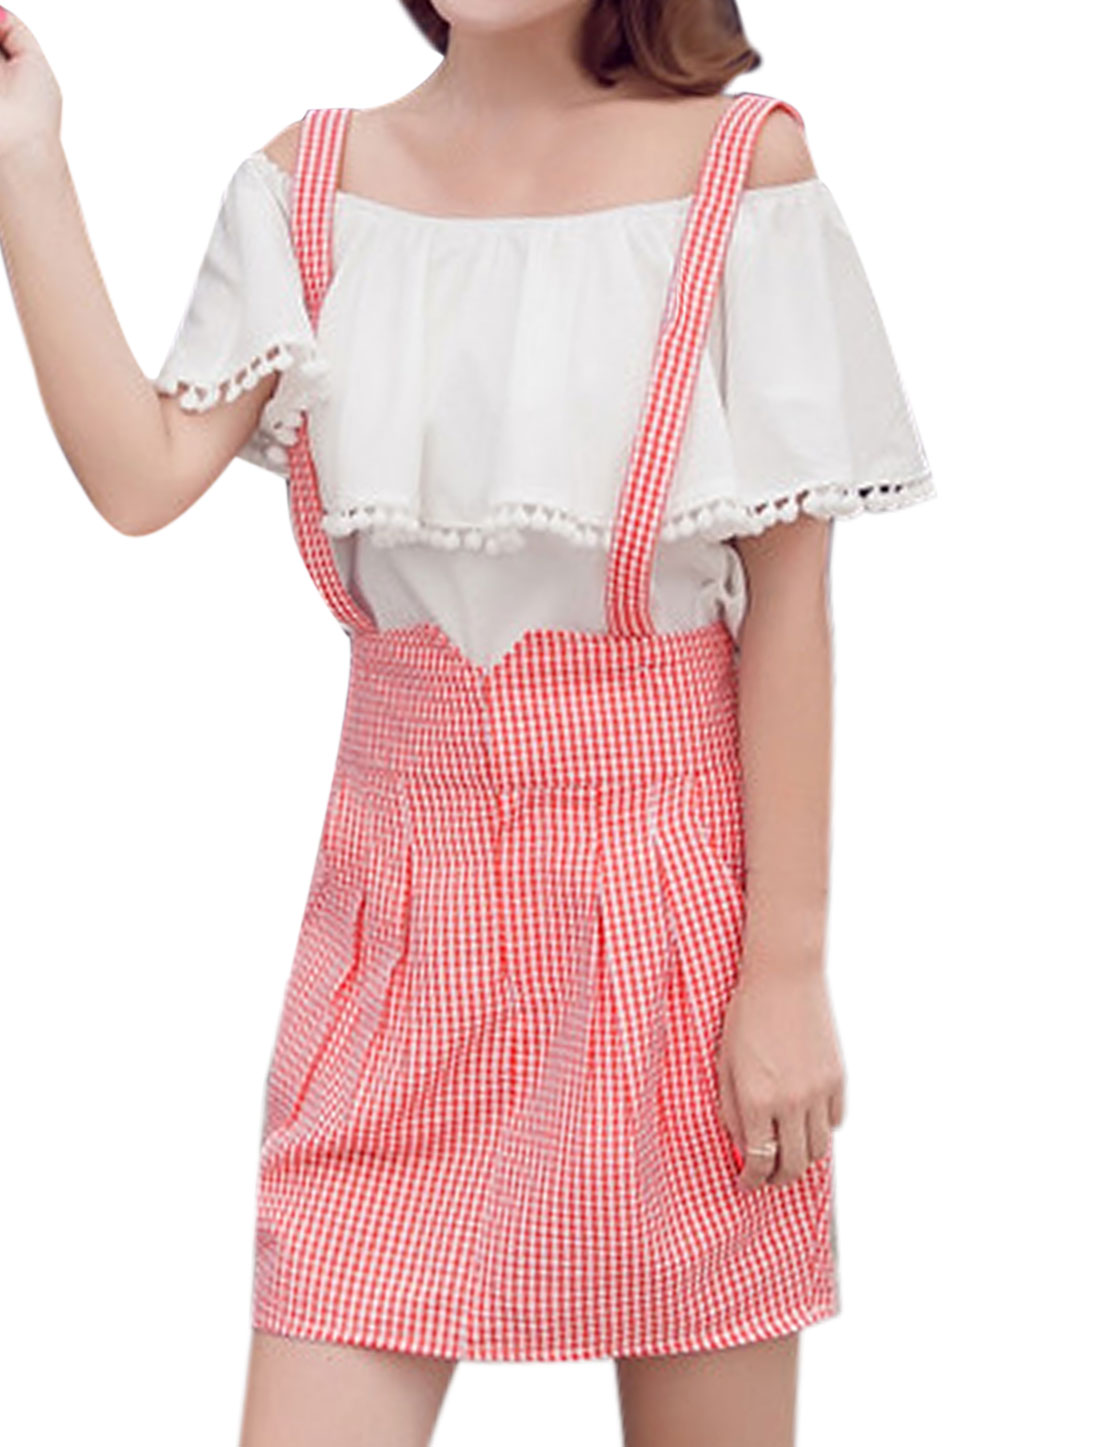 Women Plaids Detachable Straps A Line Suspender Skirt Red M